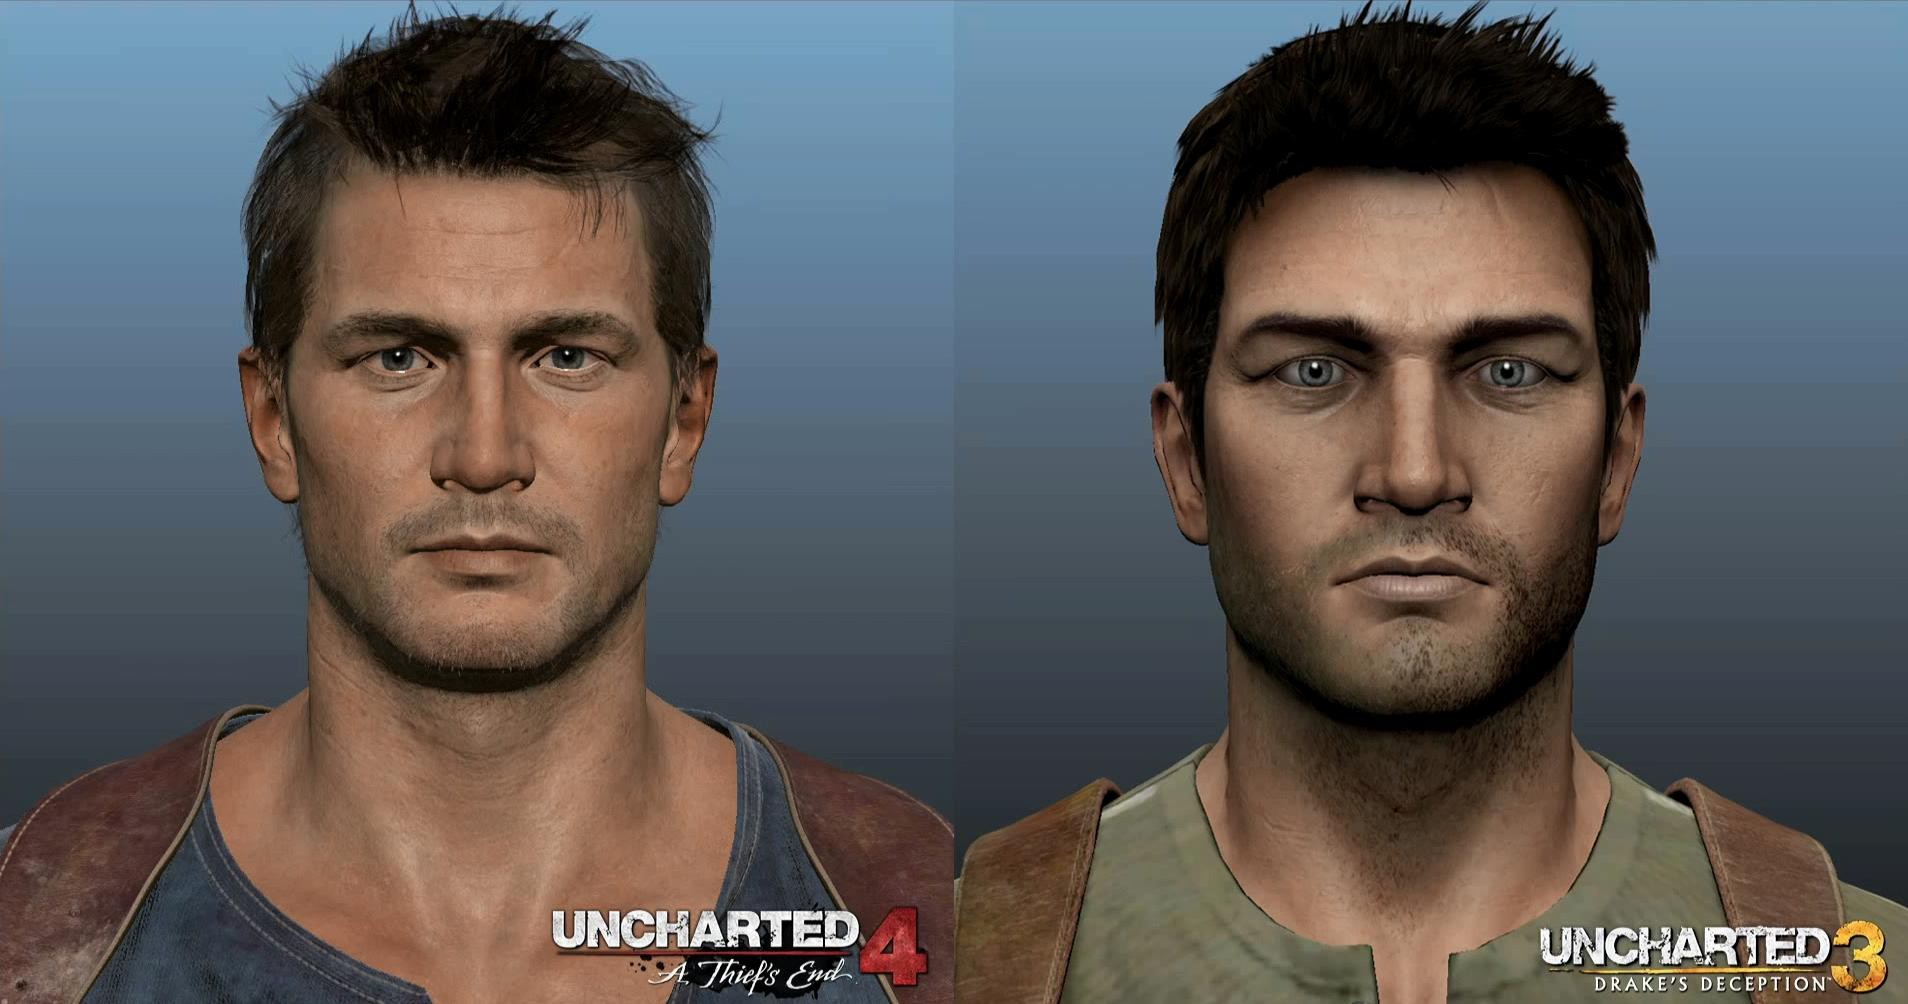 uncharted_4_face